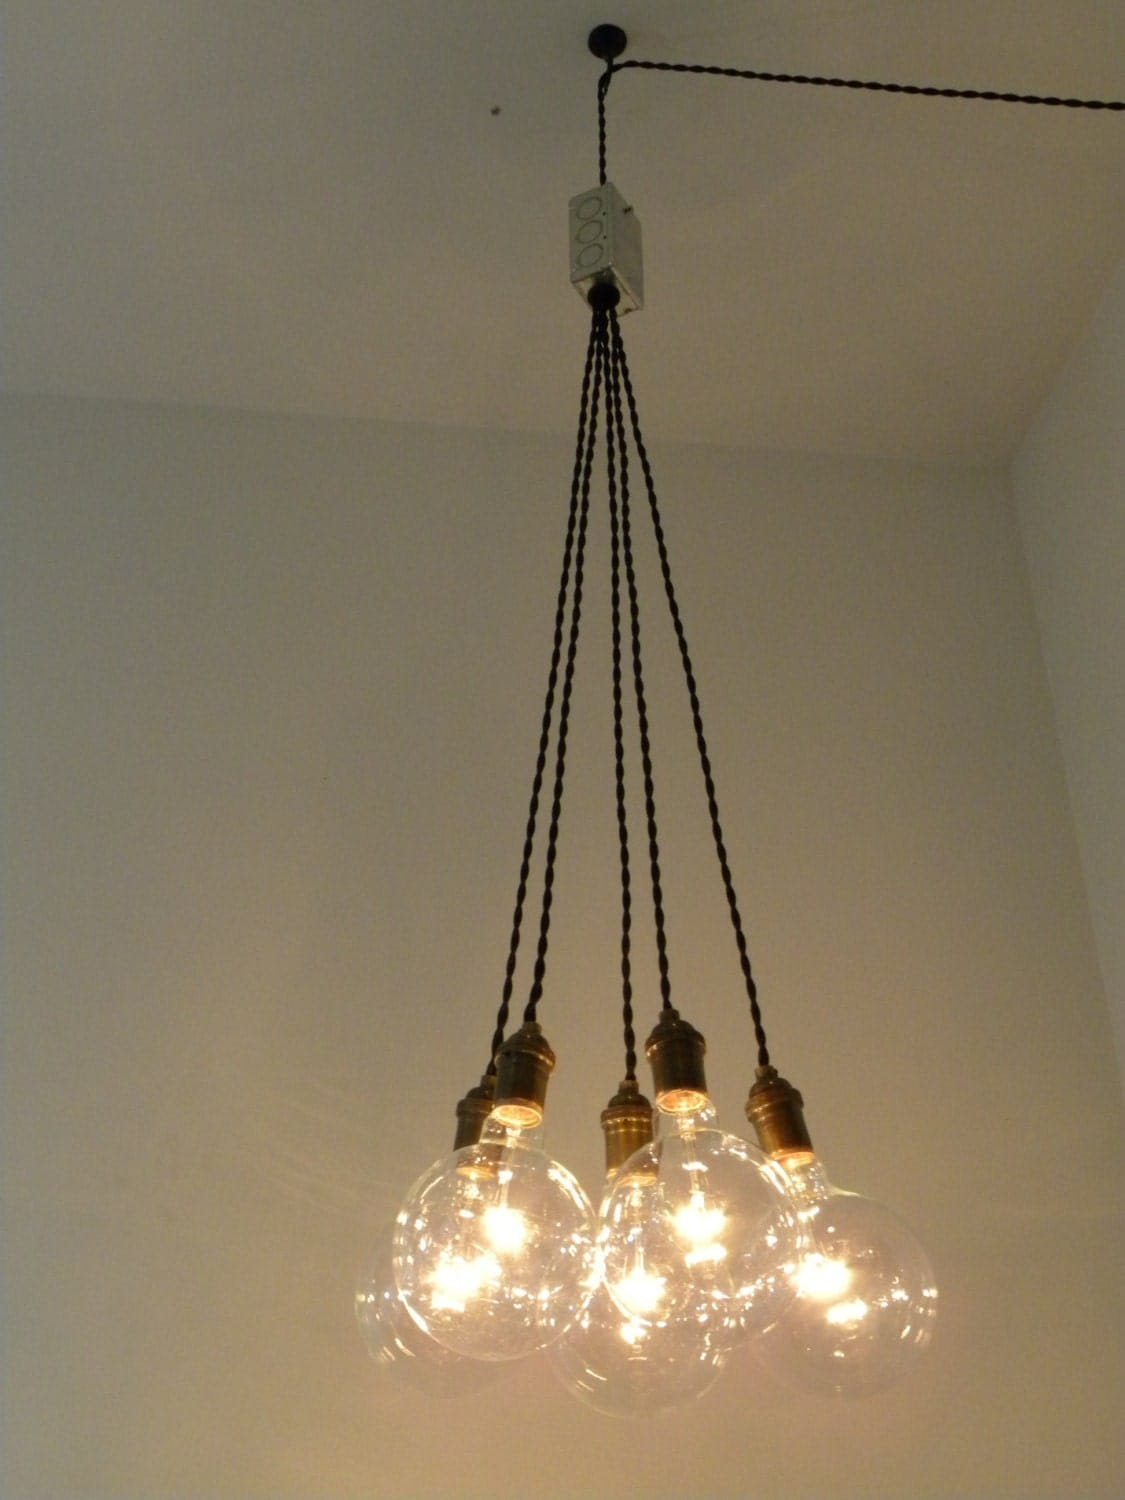 chandeliers pendant lights lamps. Black Bedroom Furniture Sets. Home Design Ideas